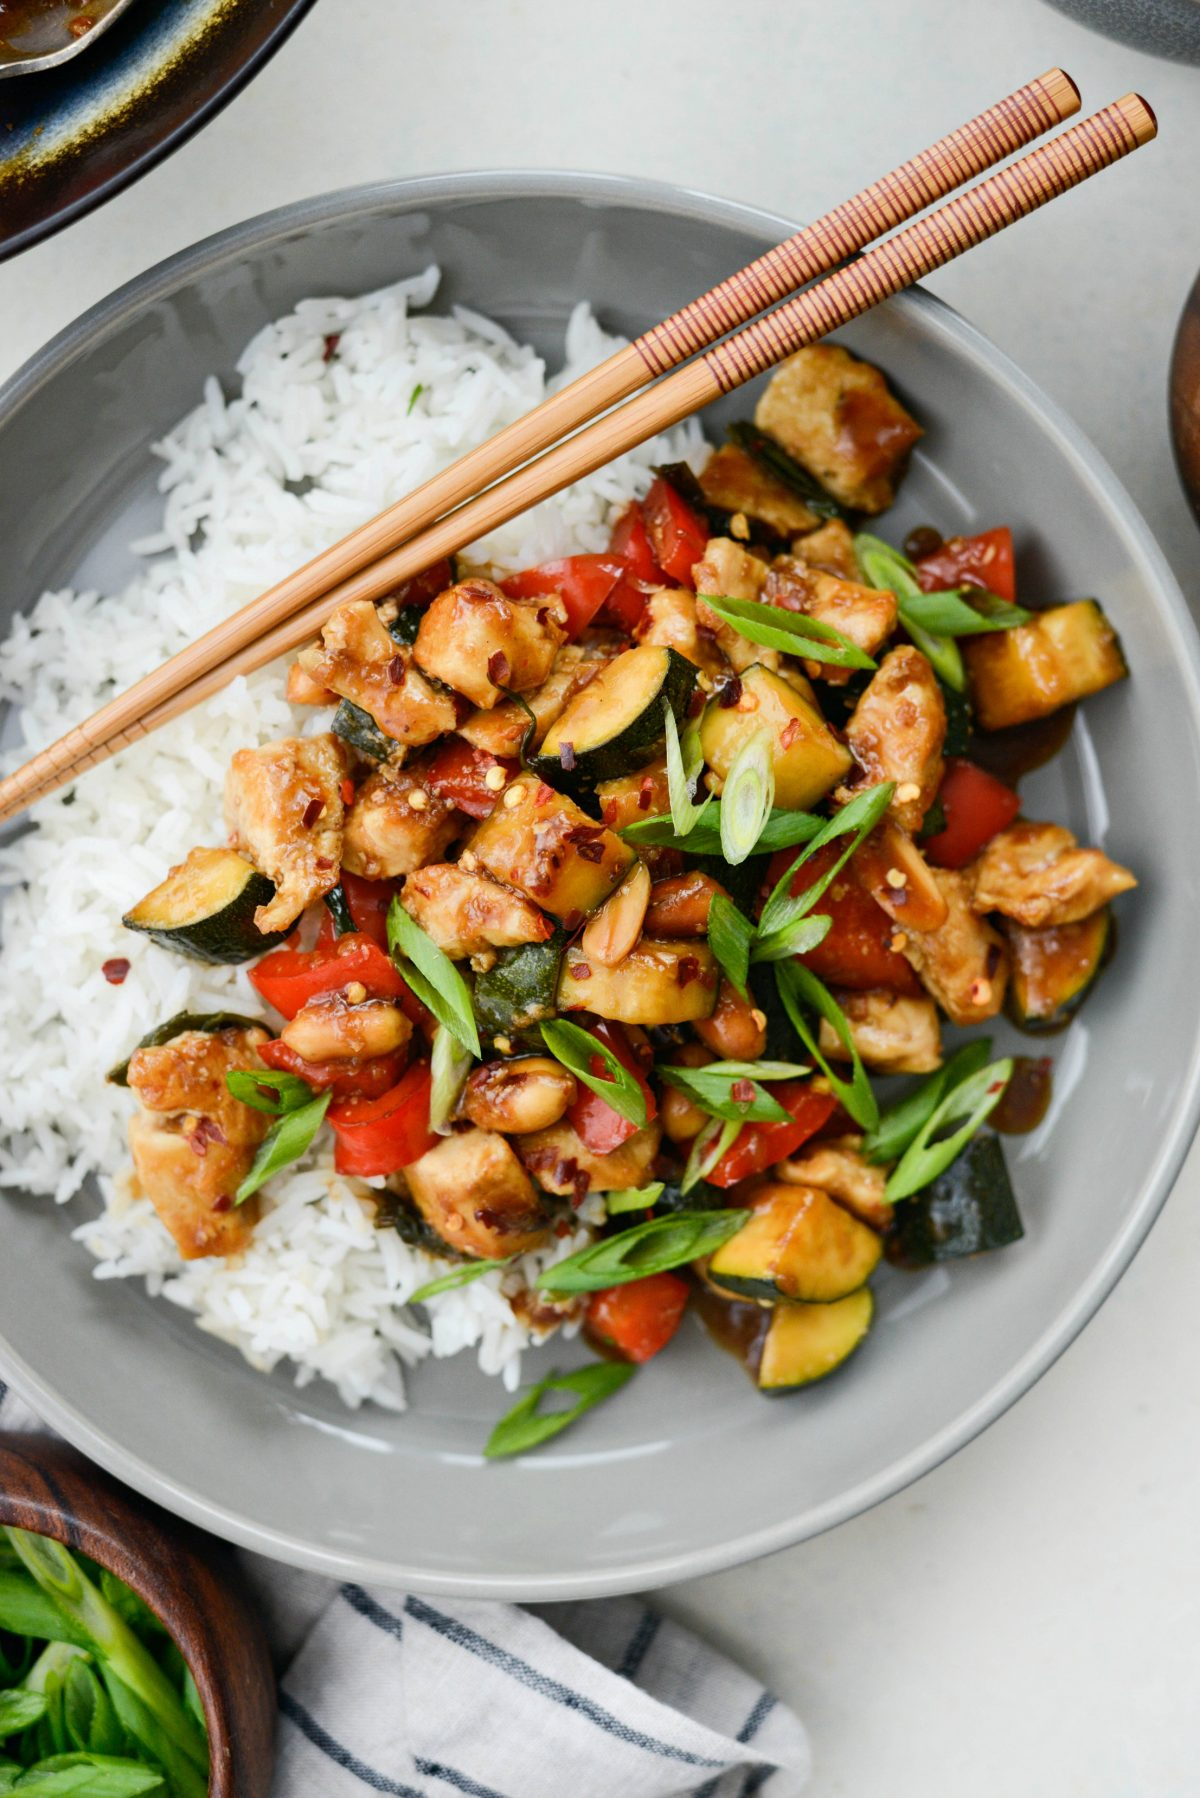 Kung Pao Chicken Stir-fry l SimplyScratch.com #kungpao #chicken #stirfry #zucchini #homemade #fromscratch #easy #healthy #rice #wok #chinese #takeout